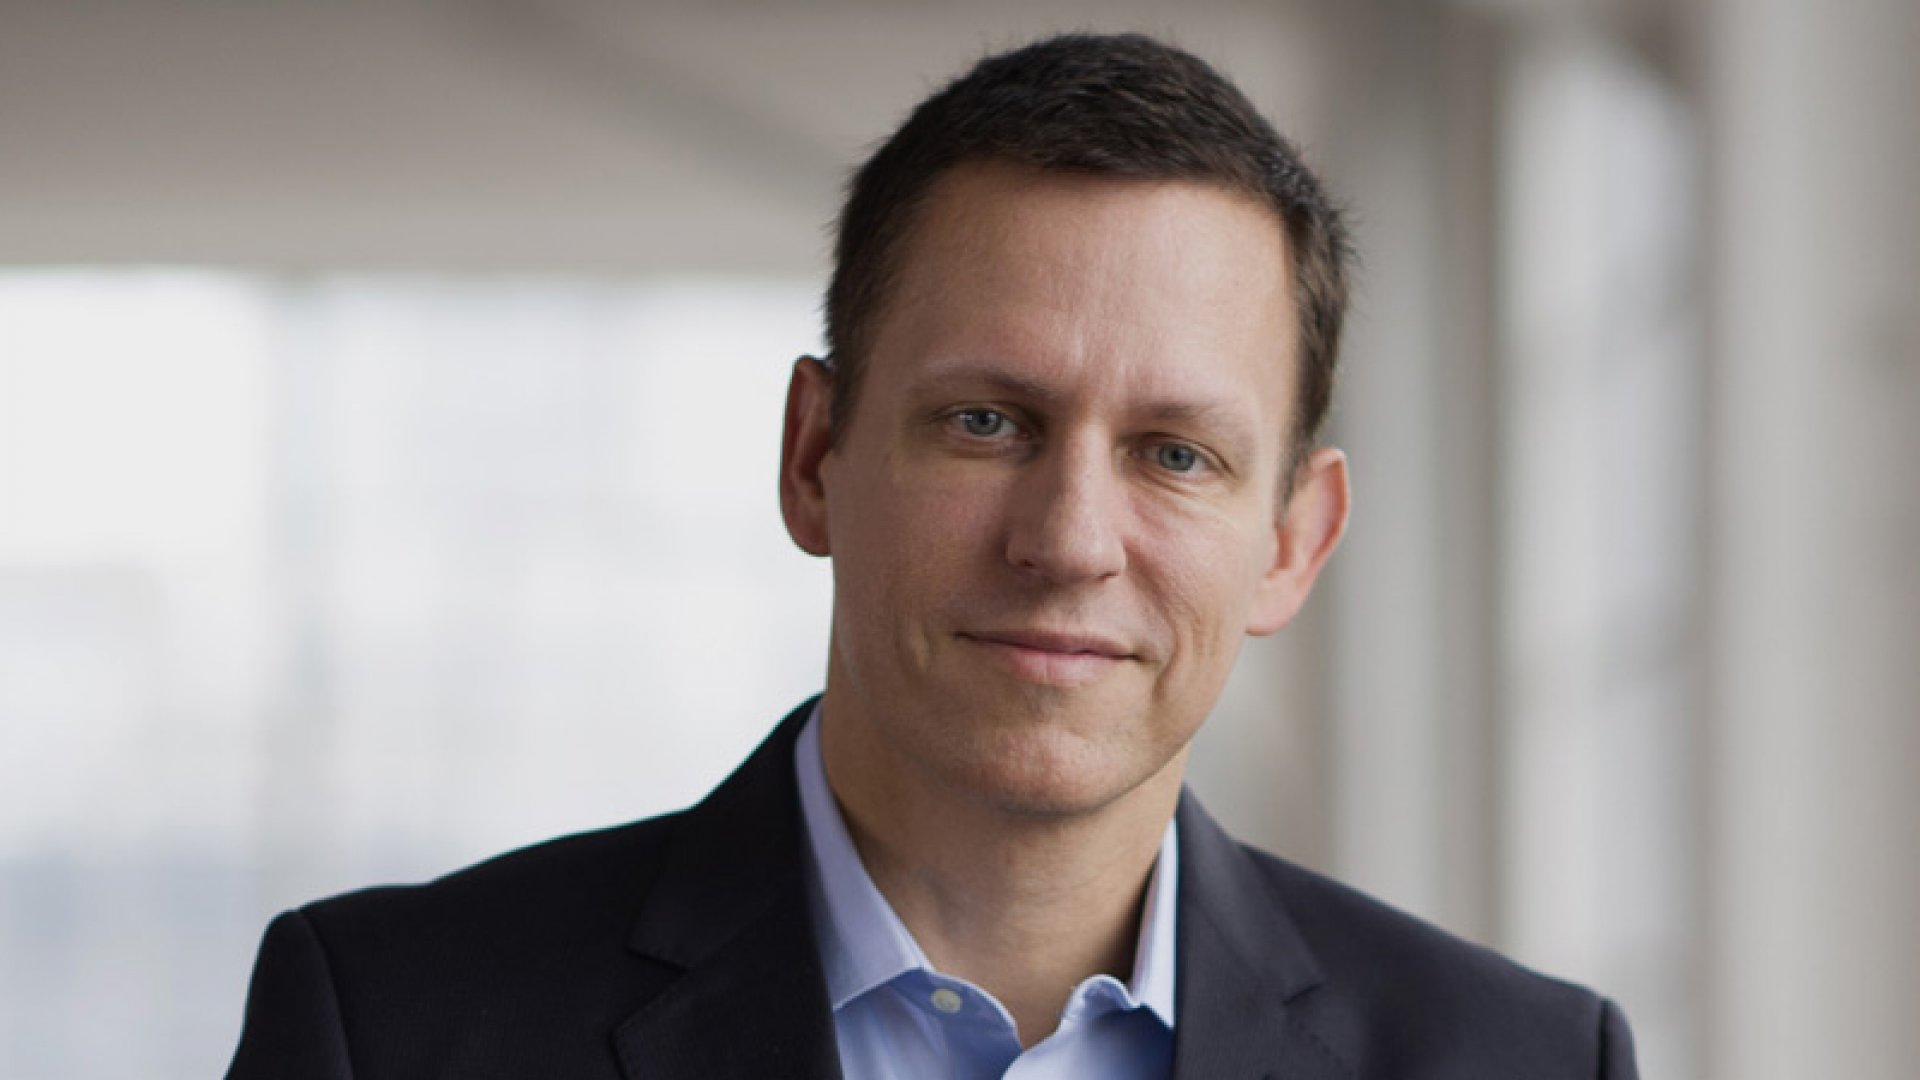 Peter Thiel on How to Build a Monopoly